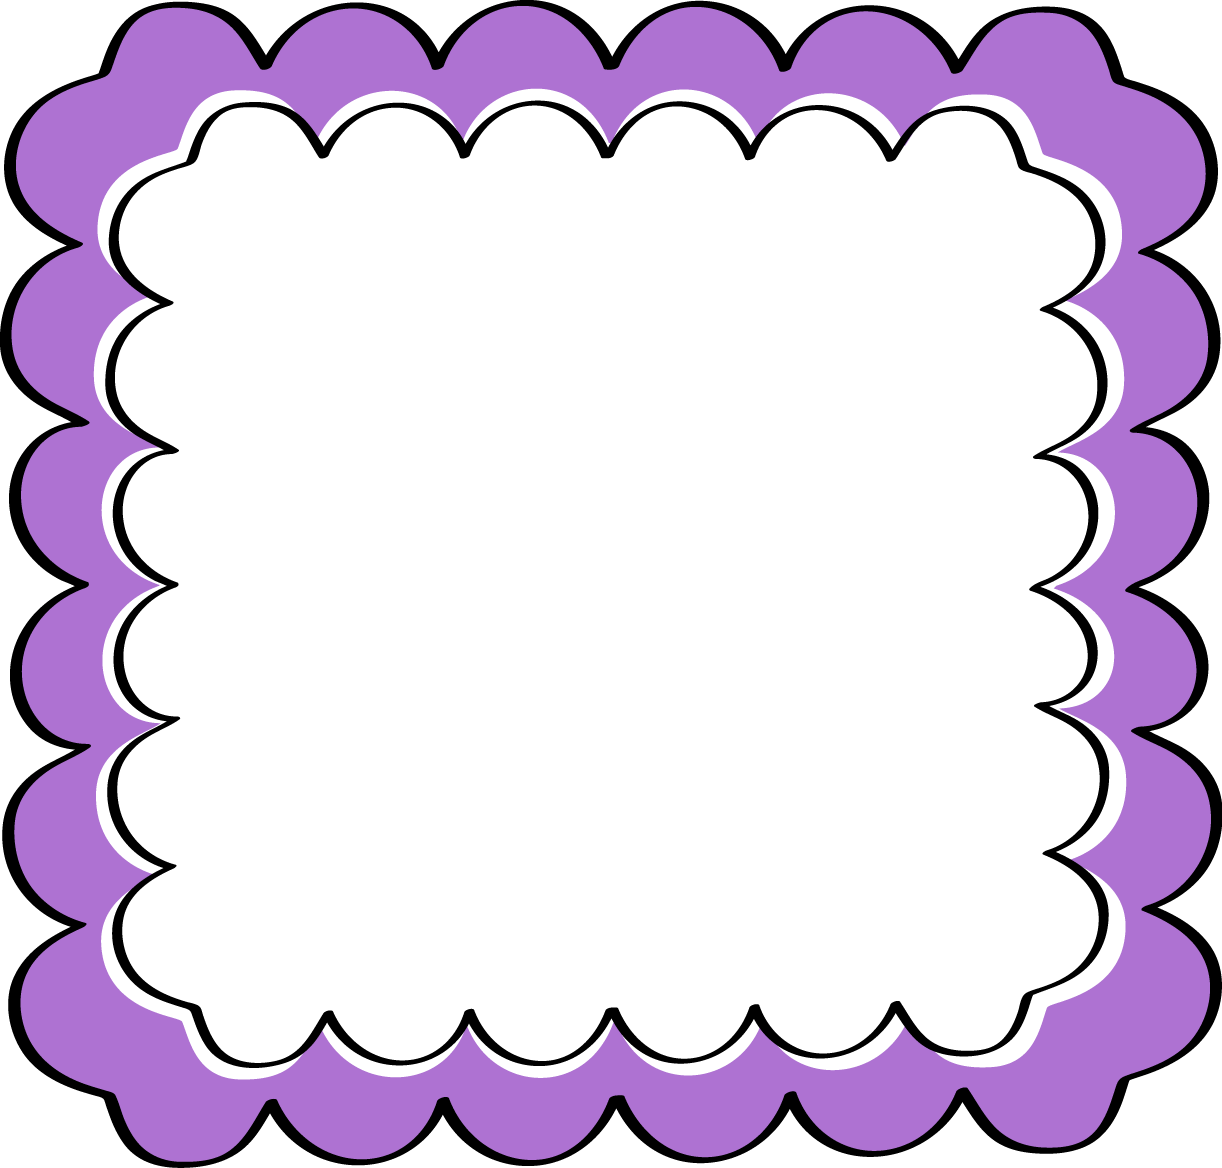 Clipart winter purple, Clipart winter purple Transparent.